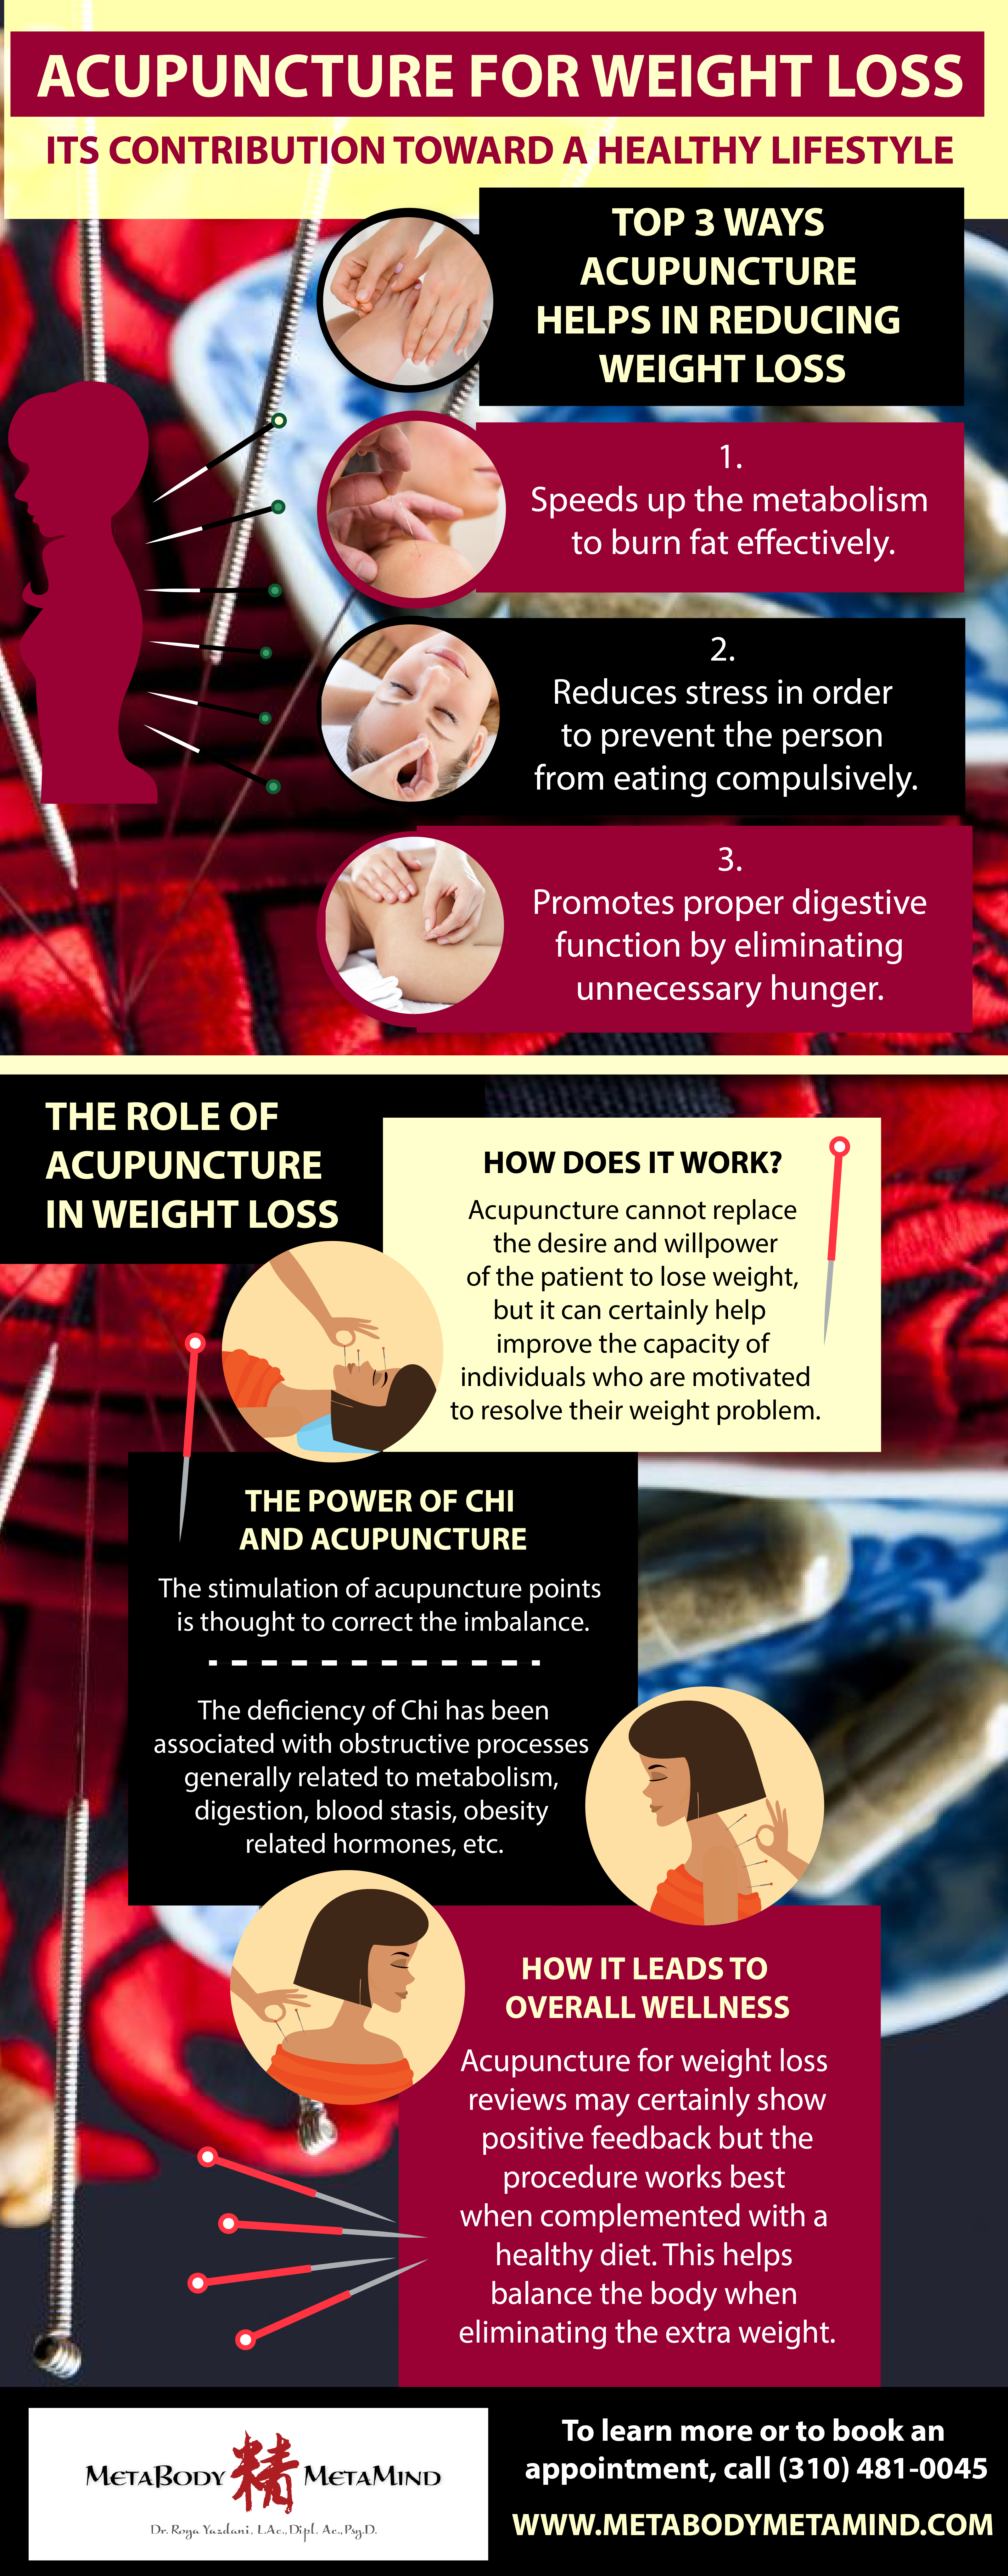 Top 3 Ways Acupuncture Helps In Reducing Weight Loss